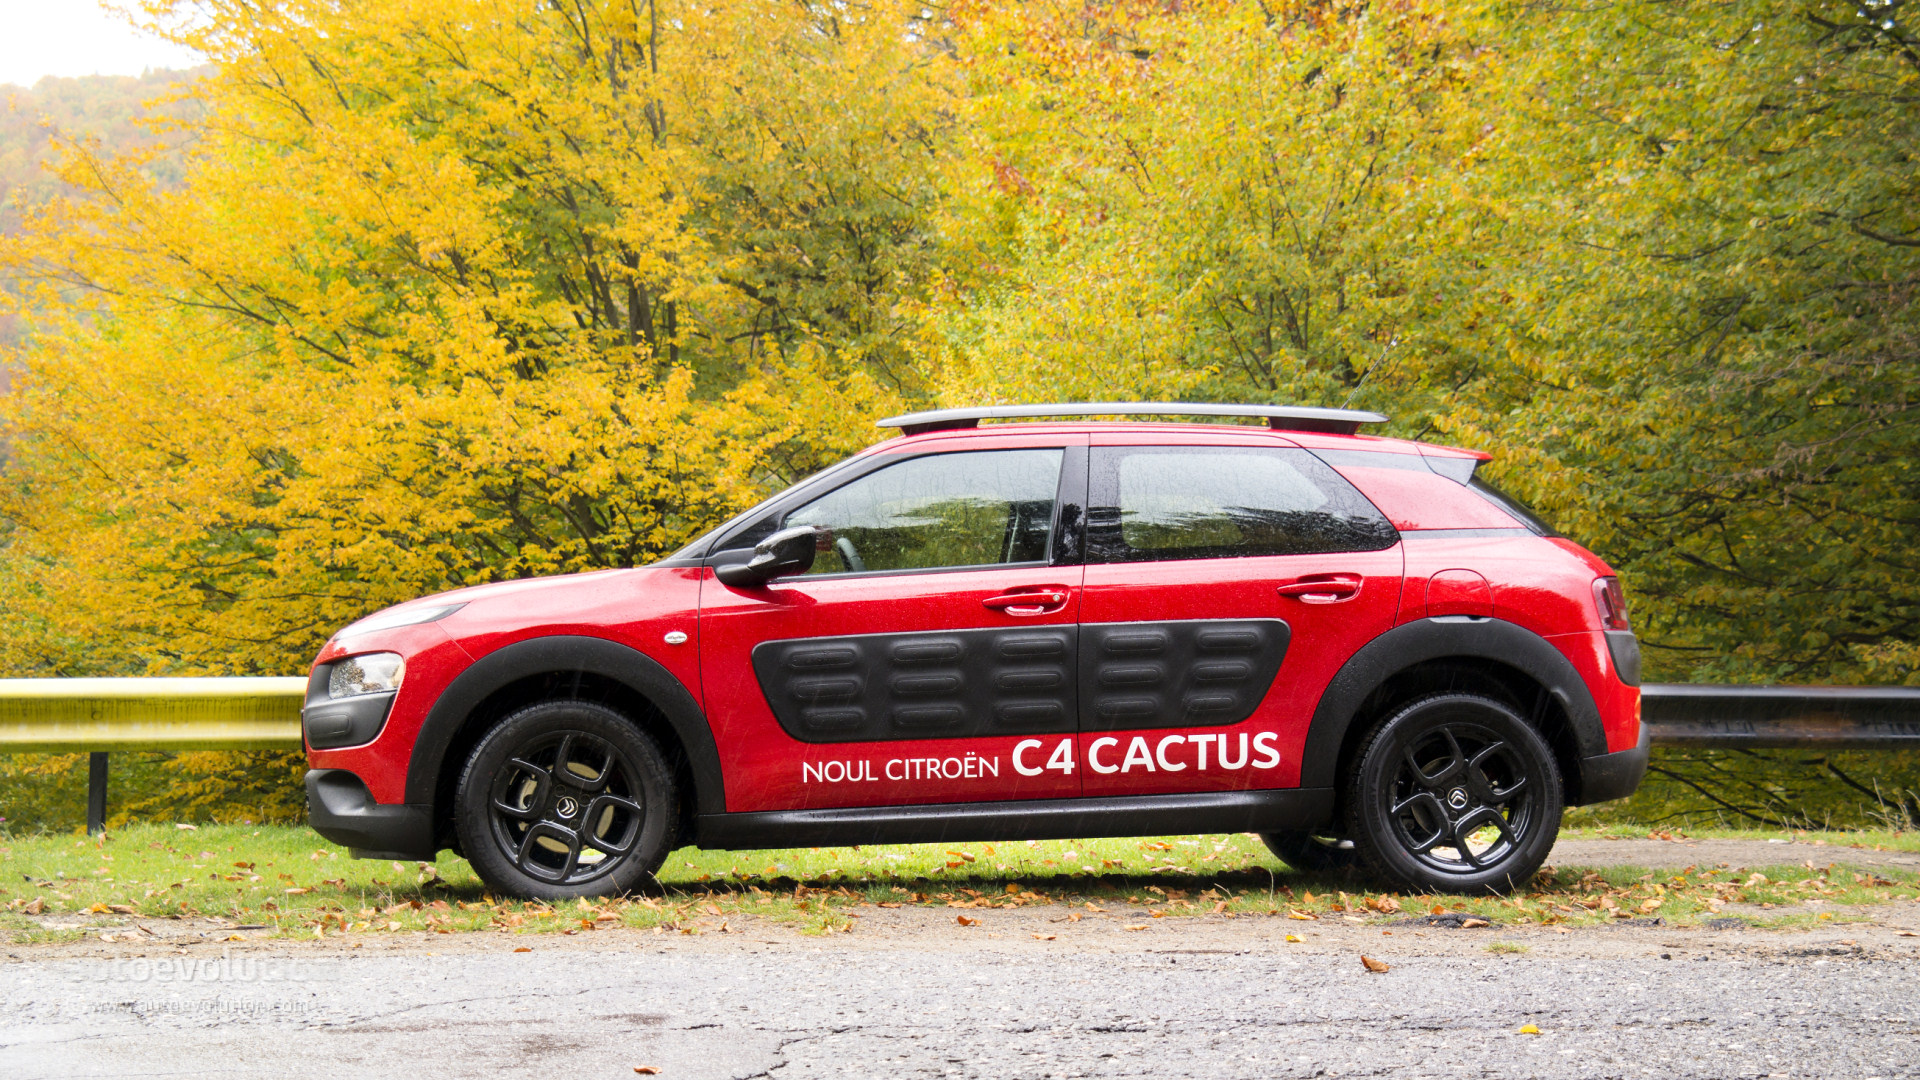 Citroen C4 Cactus Review 2014 on new bmw engines